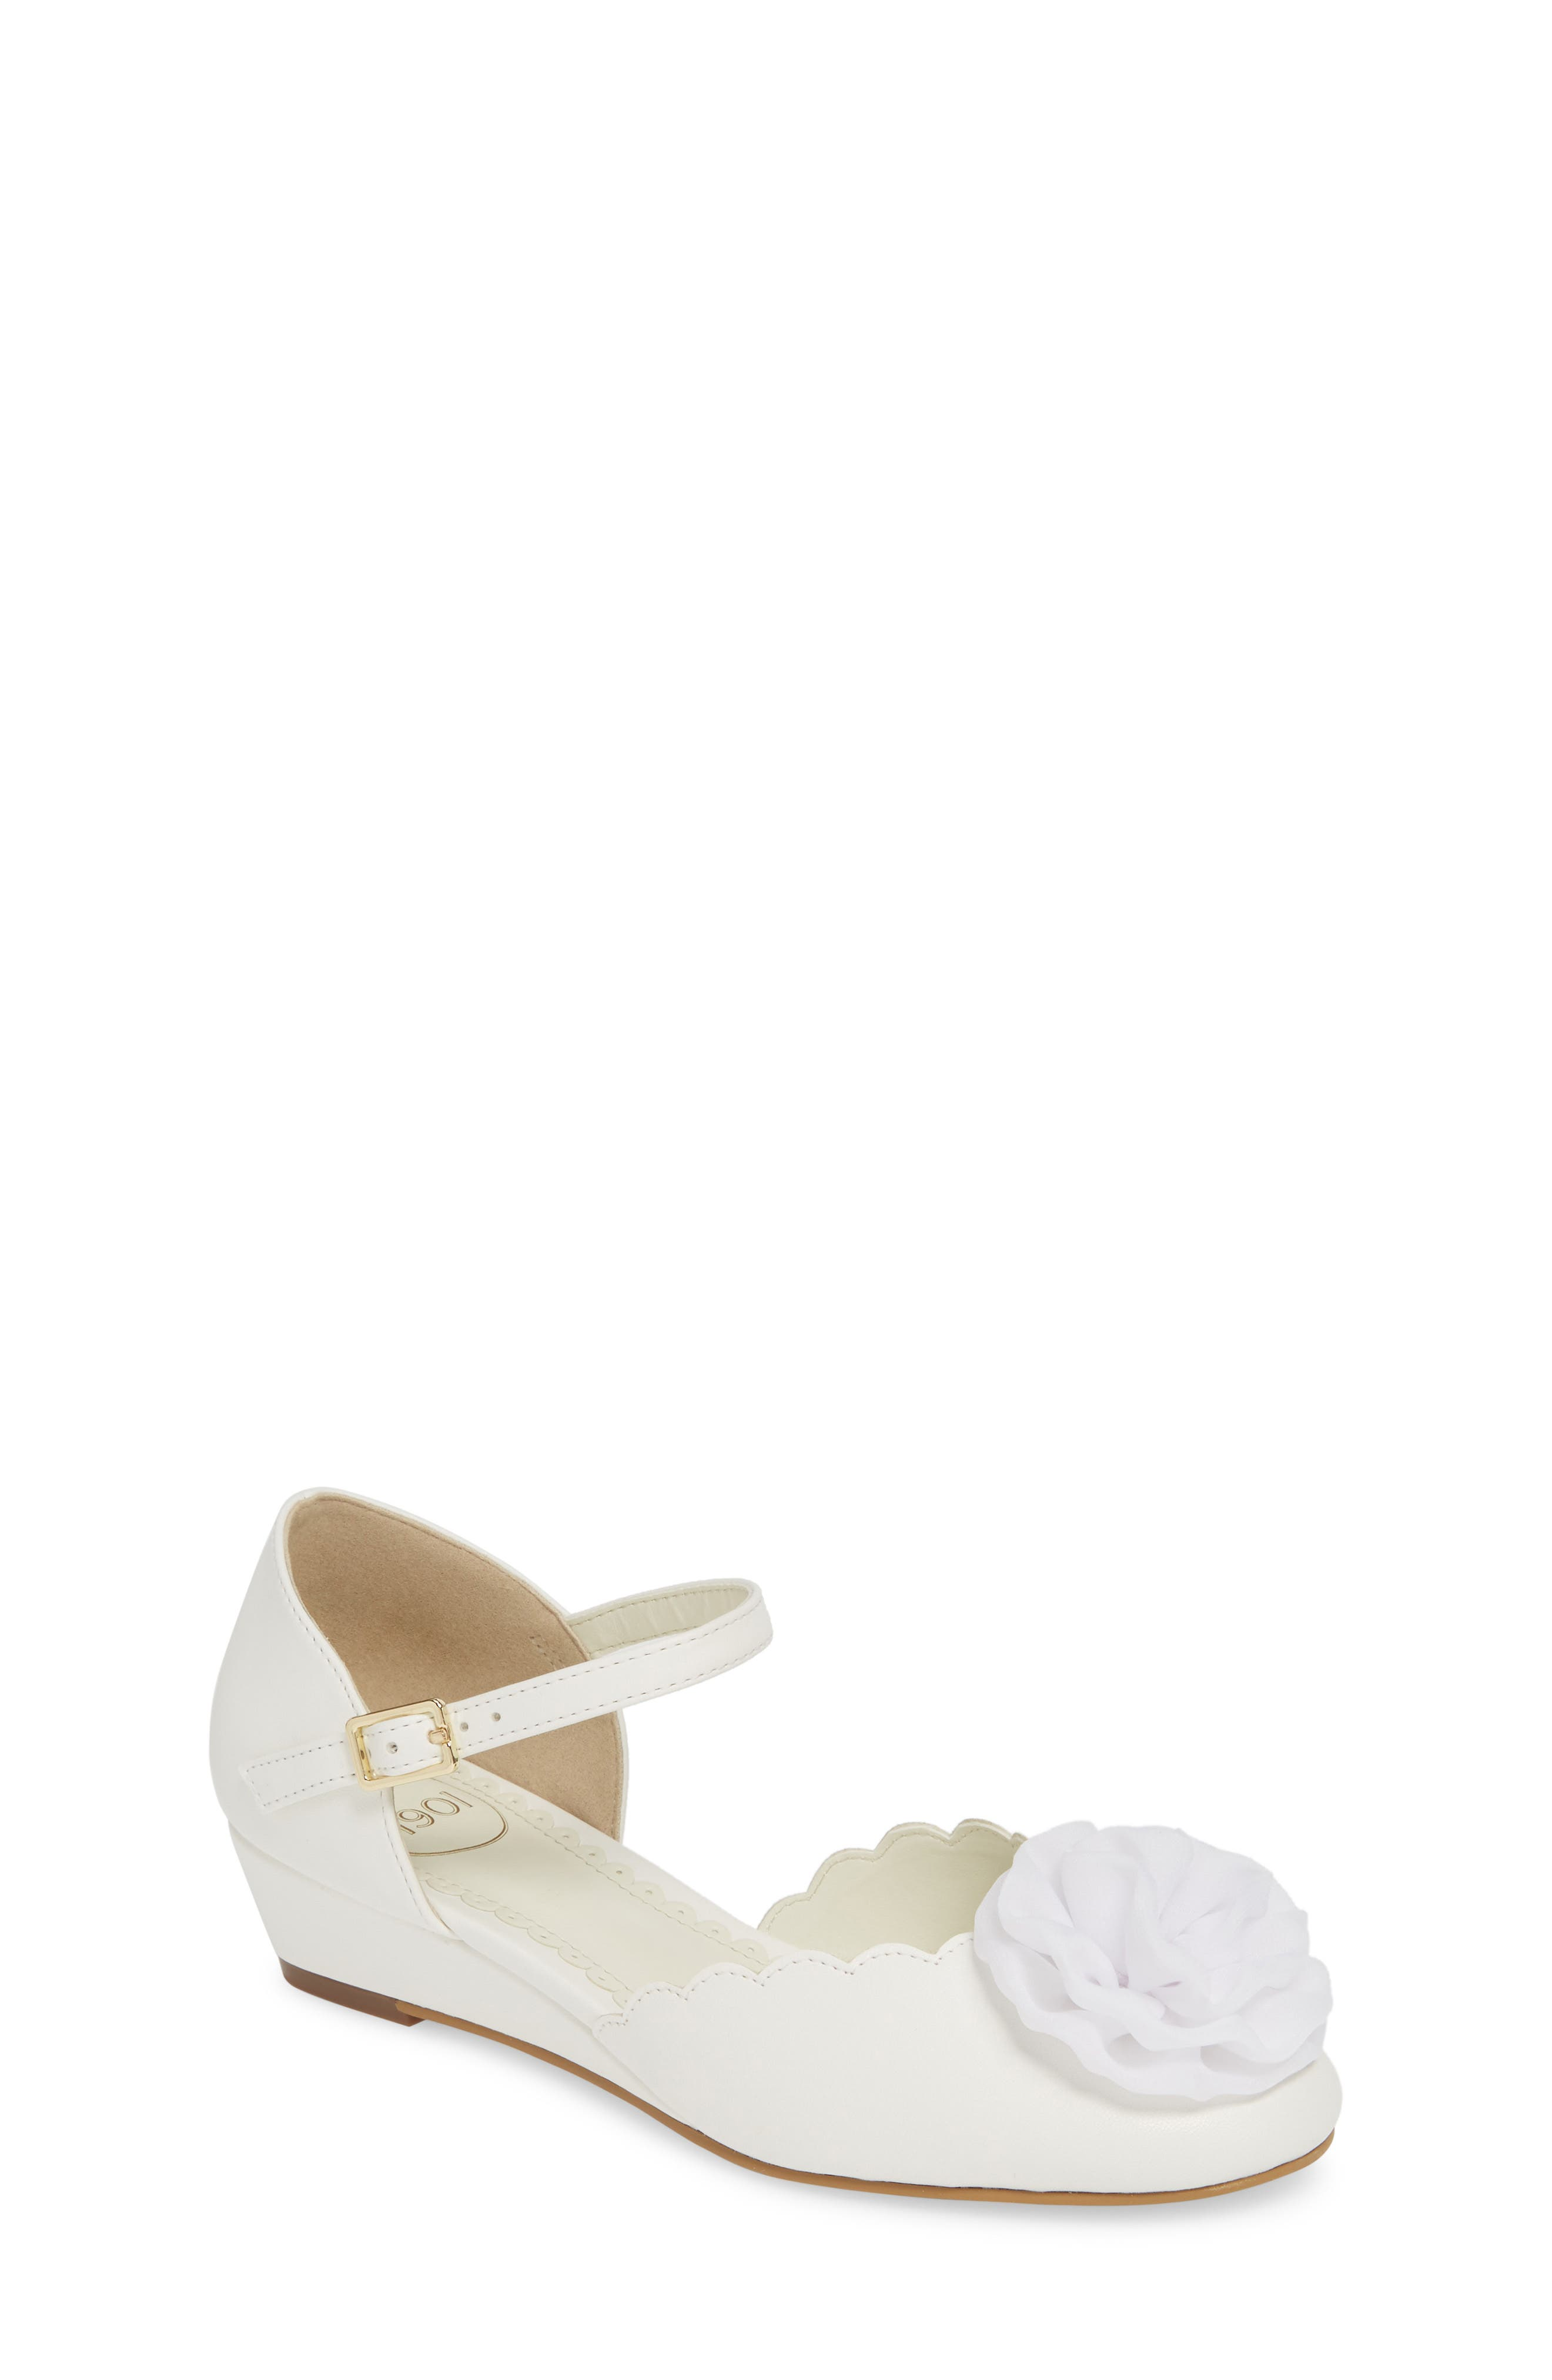 1901 Low Wedge Pump, Main, color, WHITE FAUX LEATHER